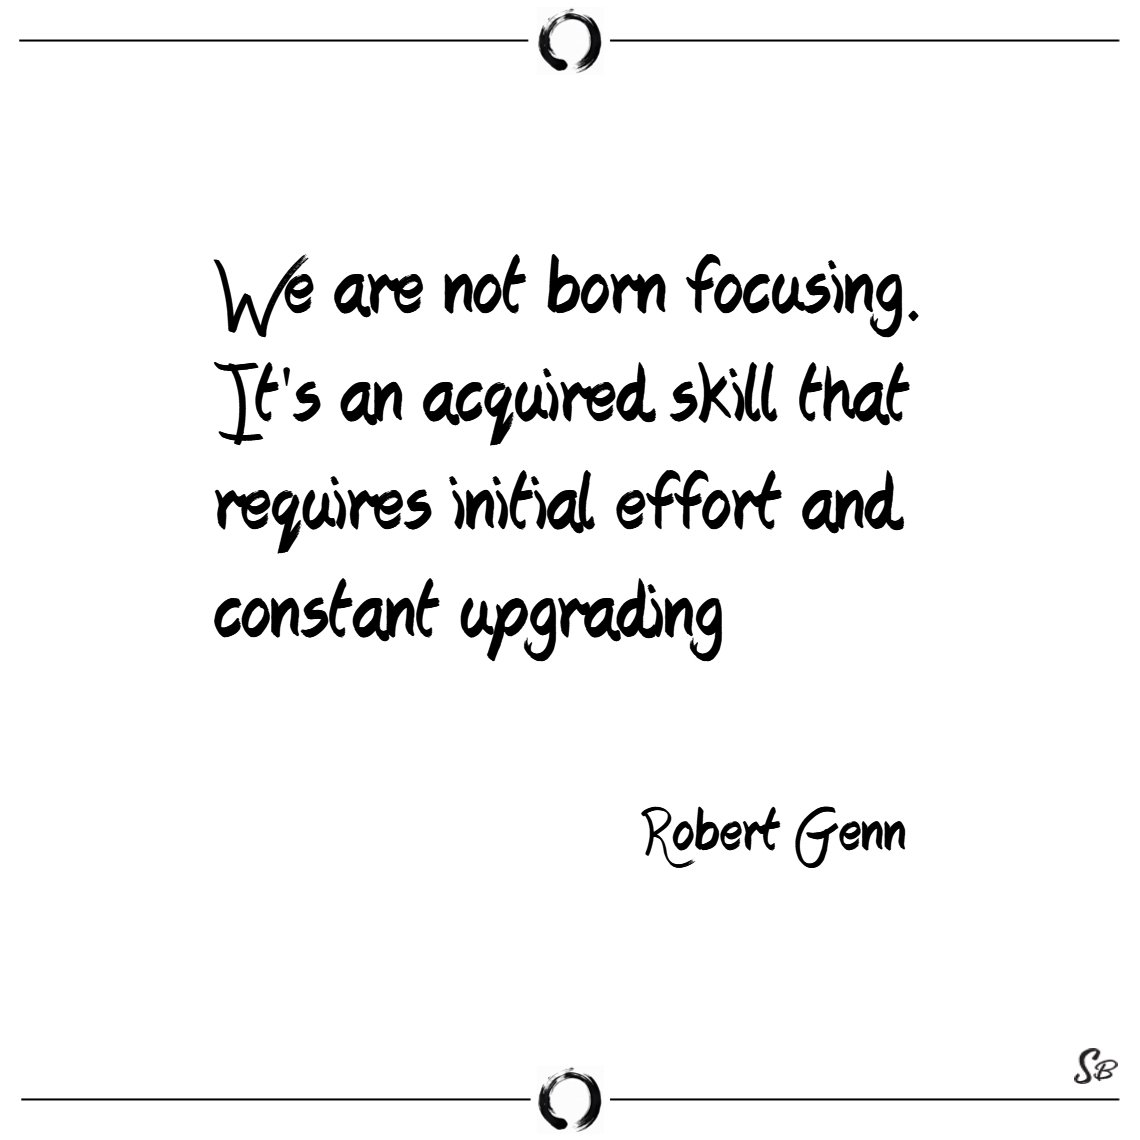 We are not born focusing. it's an acquired skill t